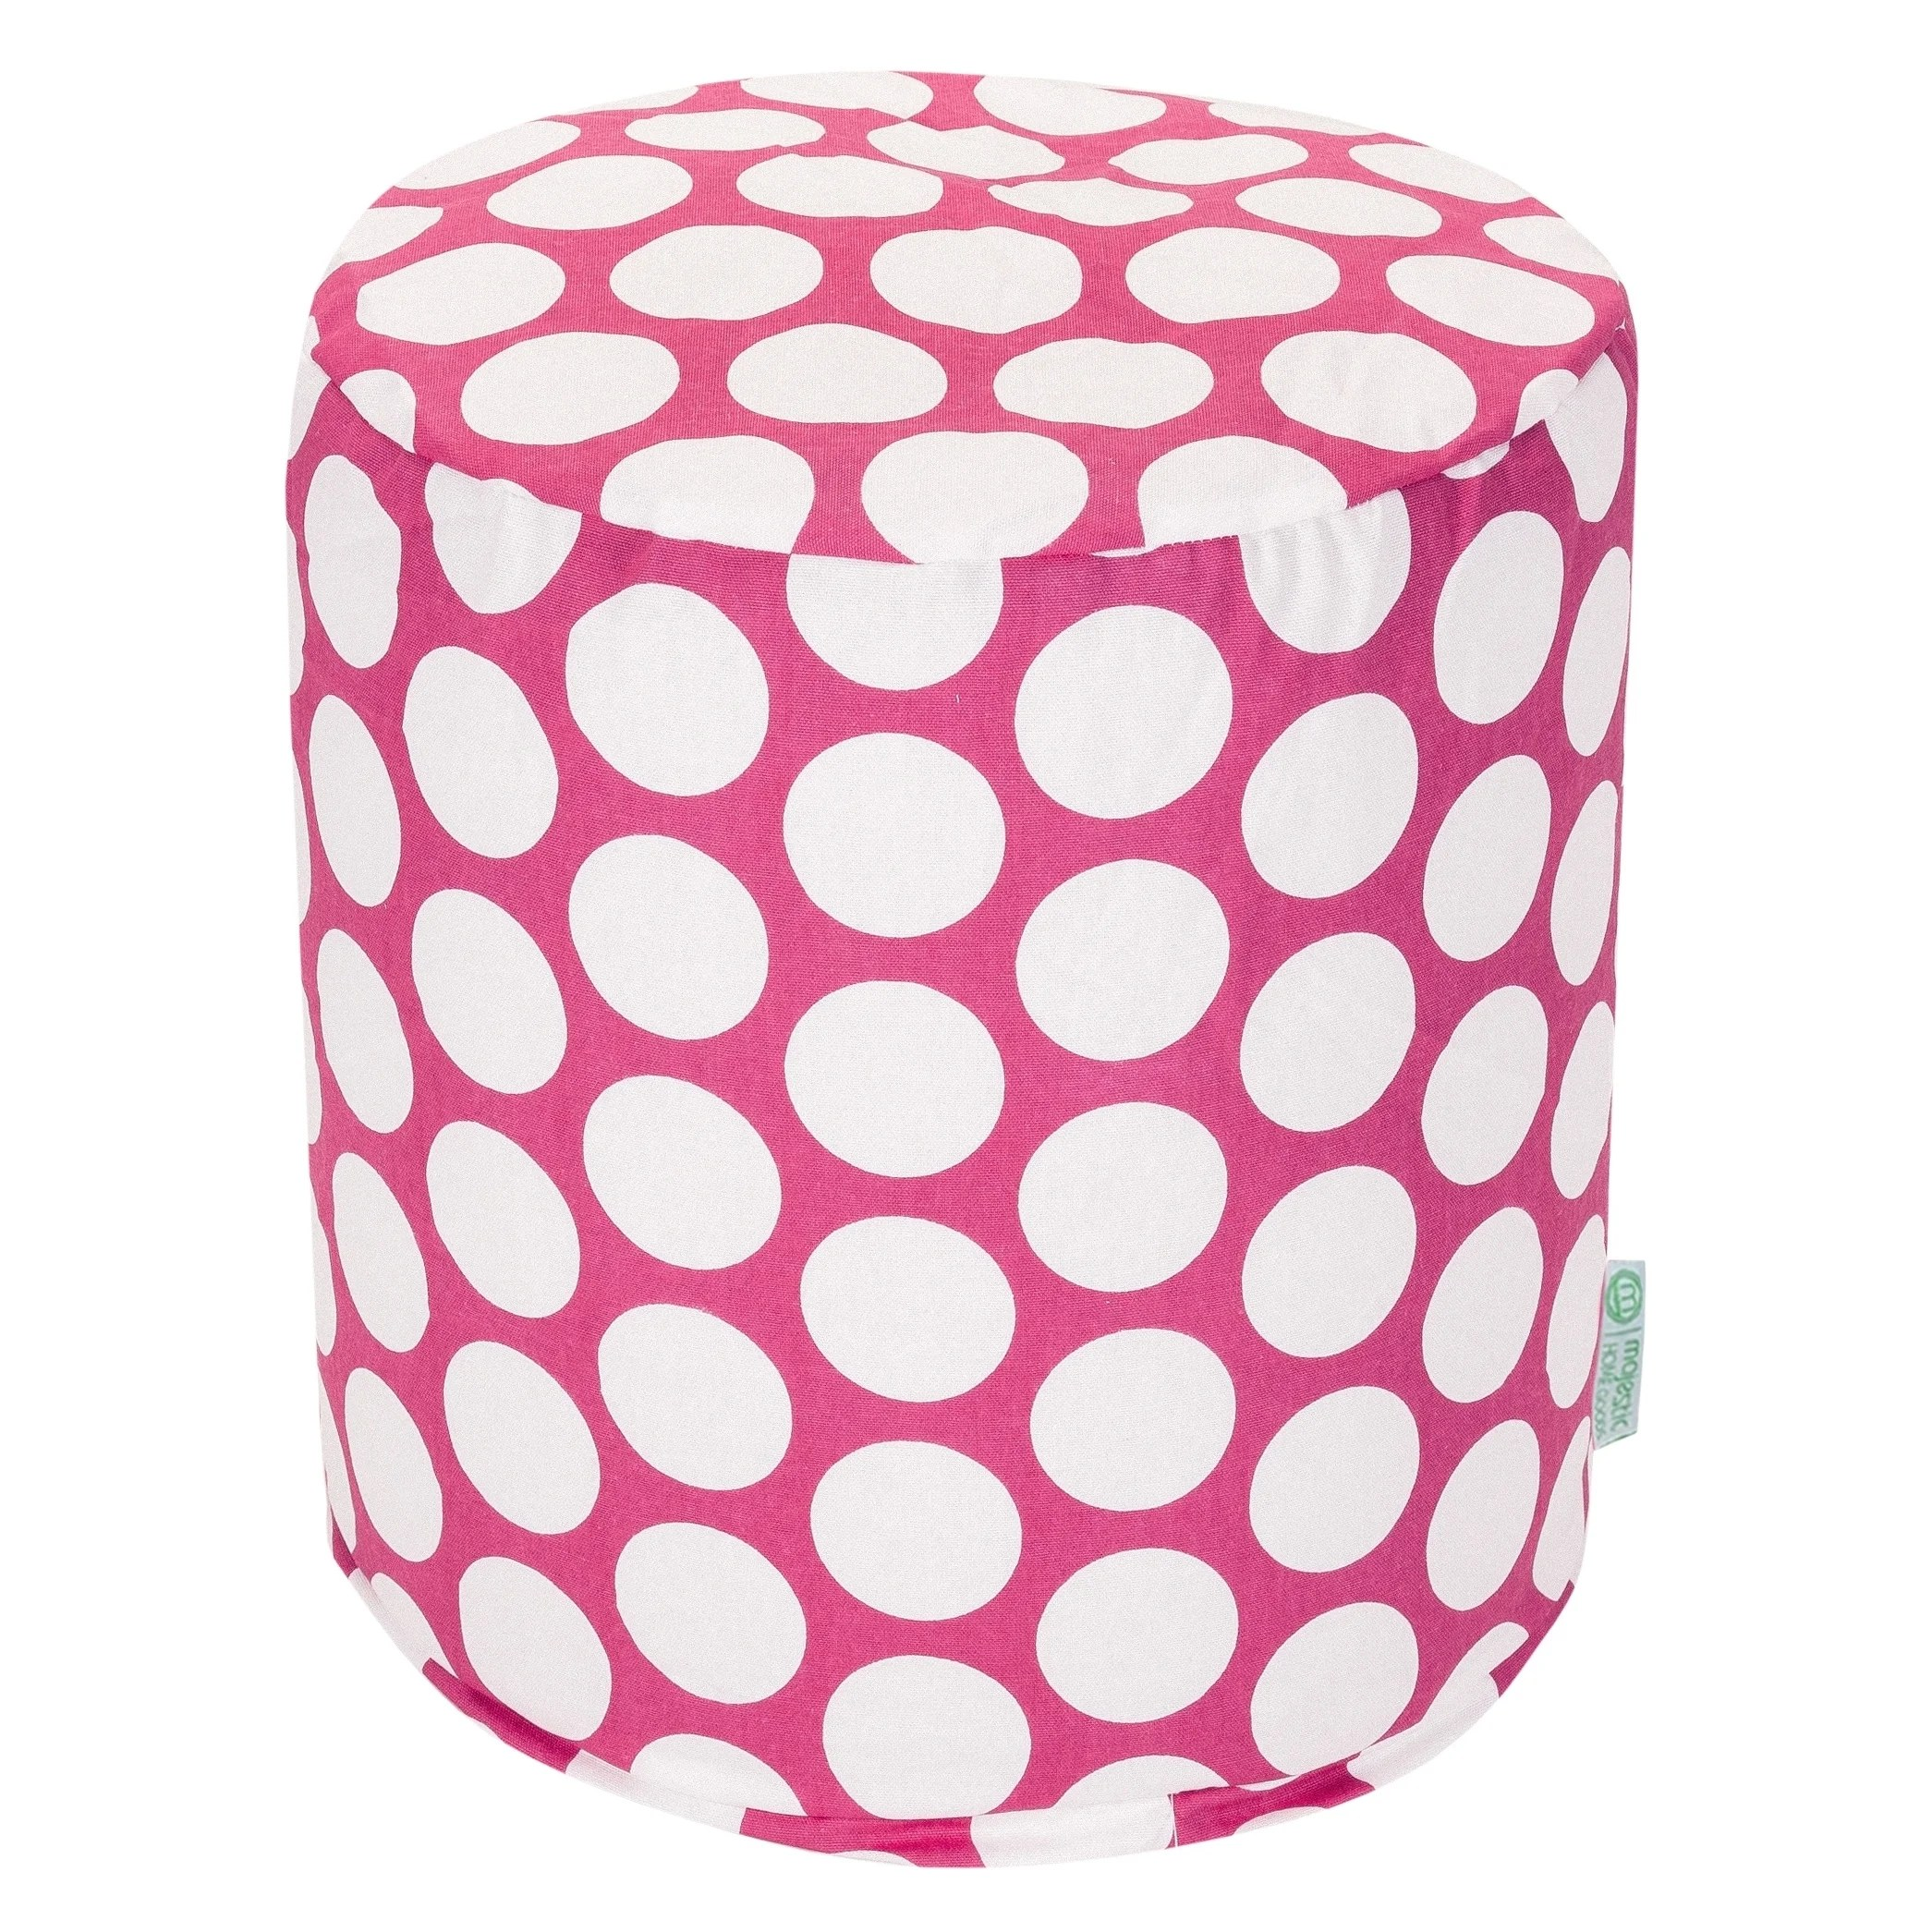 Extra Large Pouf Ottoman Details About Majestic Home Goods Large Polka Dot Indoor Ottoman Pouf 16